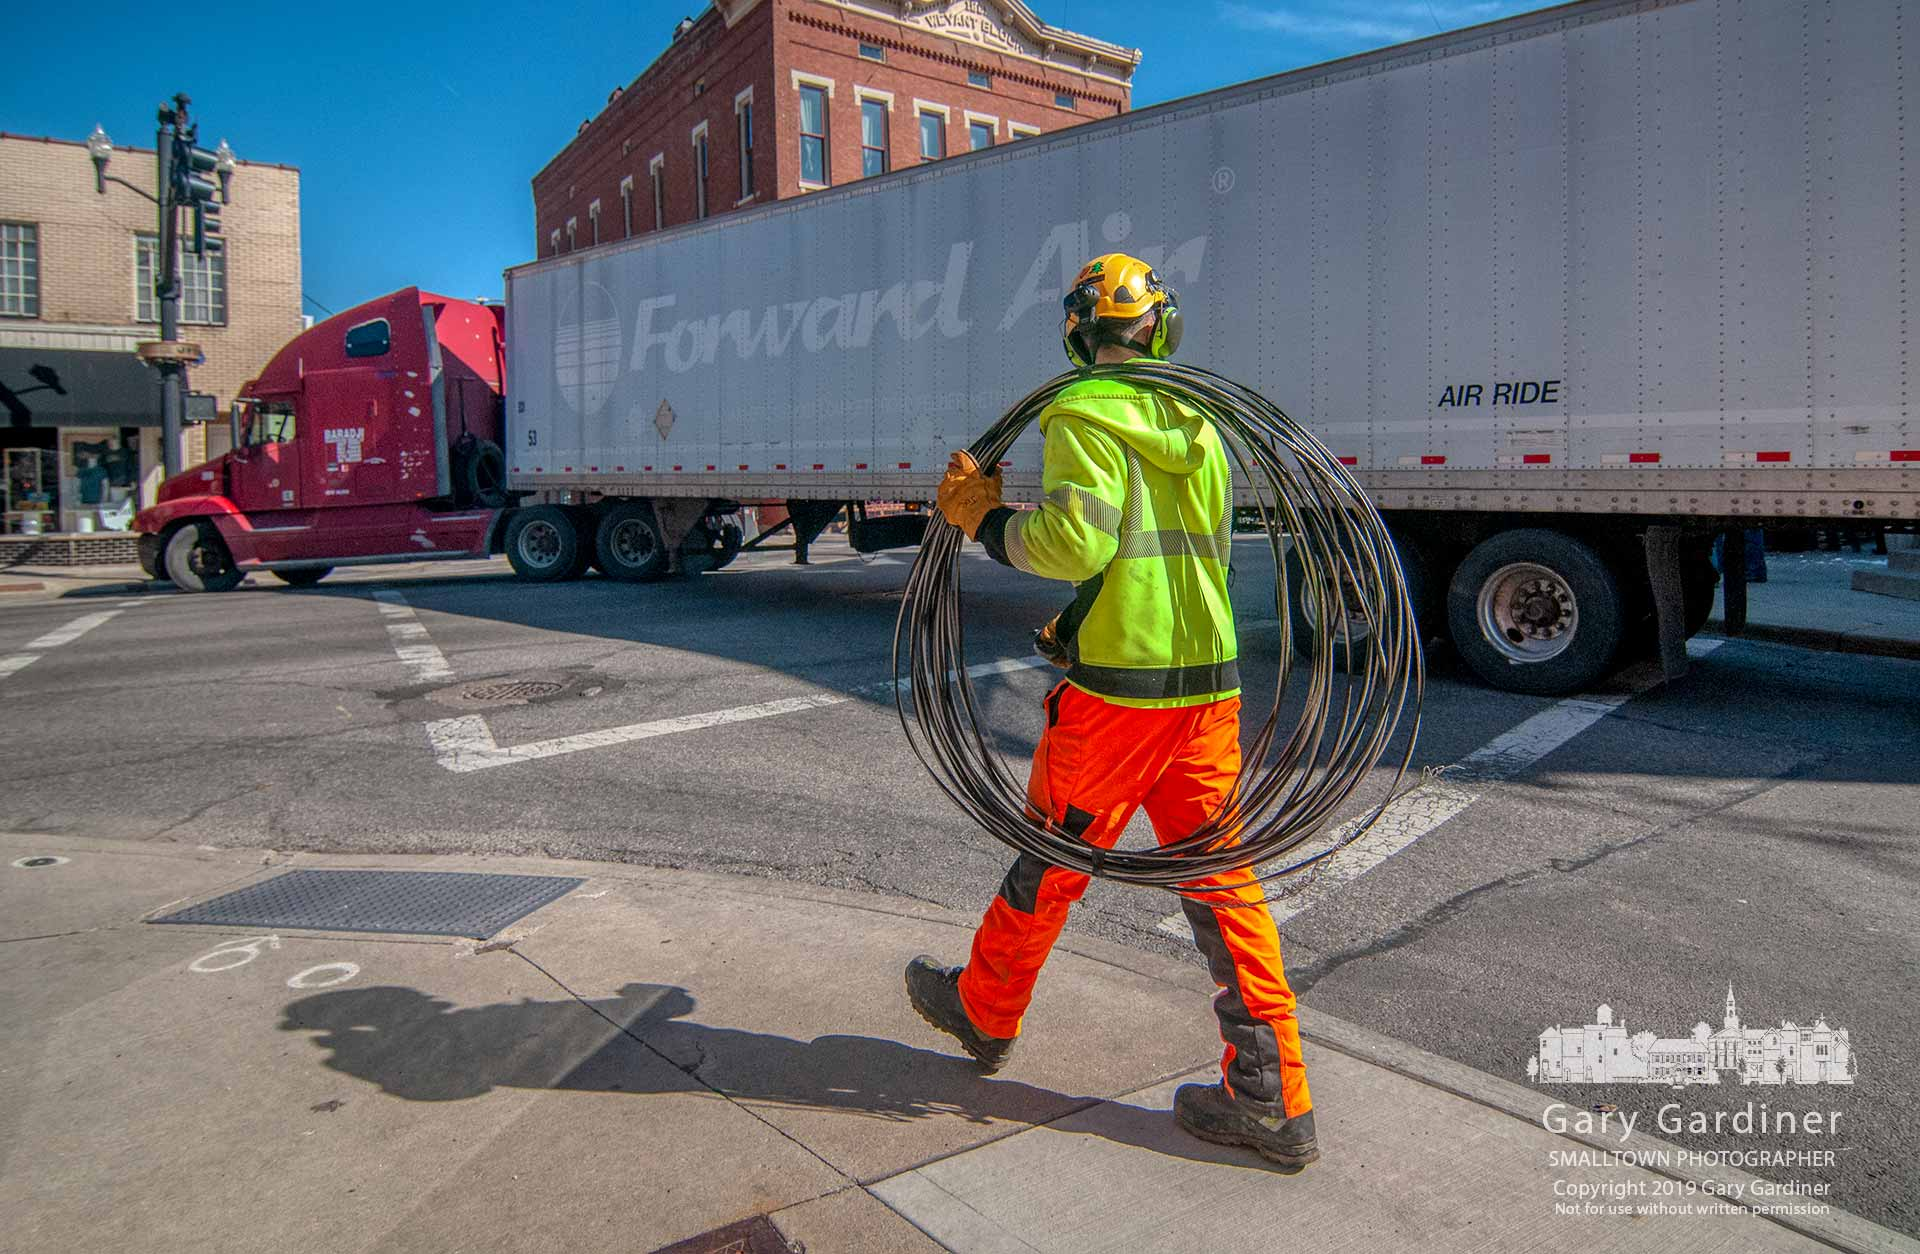 A city electric worker carries away a low-hanging power cable torn from its anchor when it was struck by a truck turning onto State Street damaging the traffic signal and closing the street for several hours for repairs. My Final Photo for March 12, 2019.